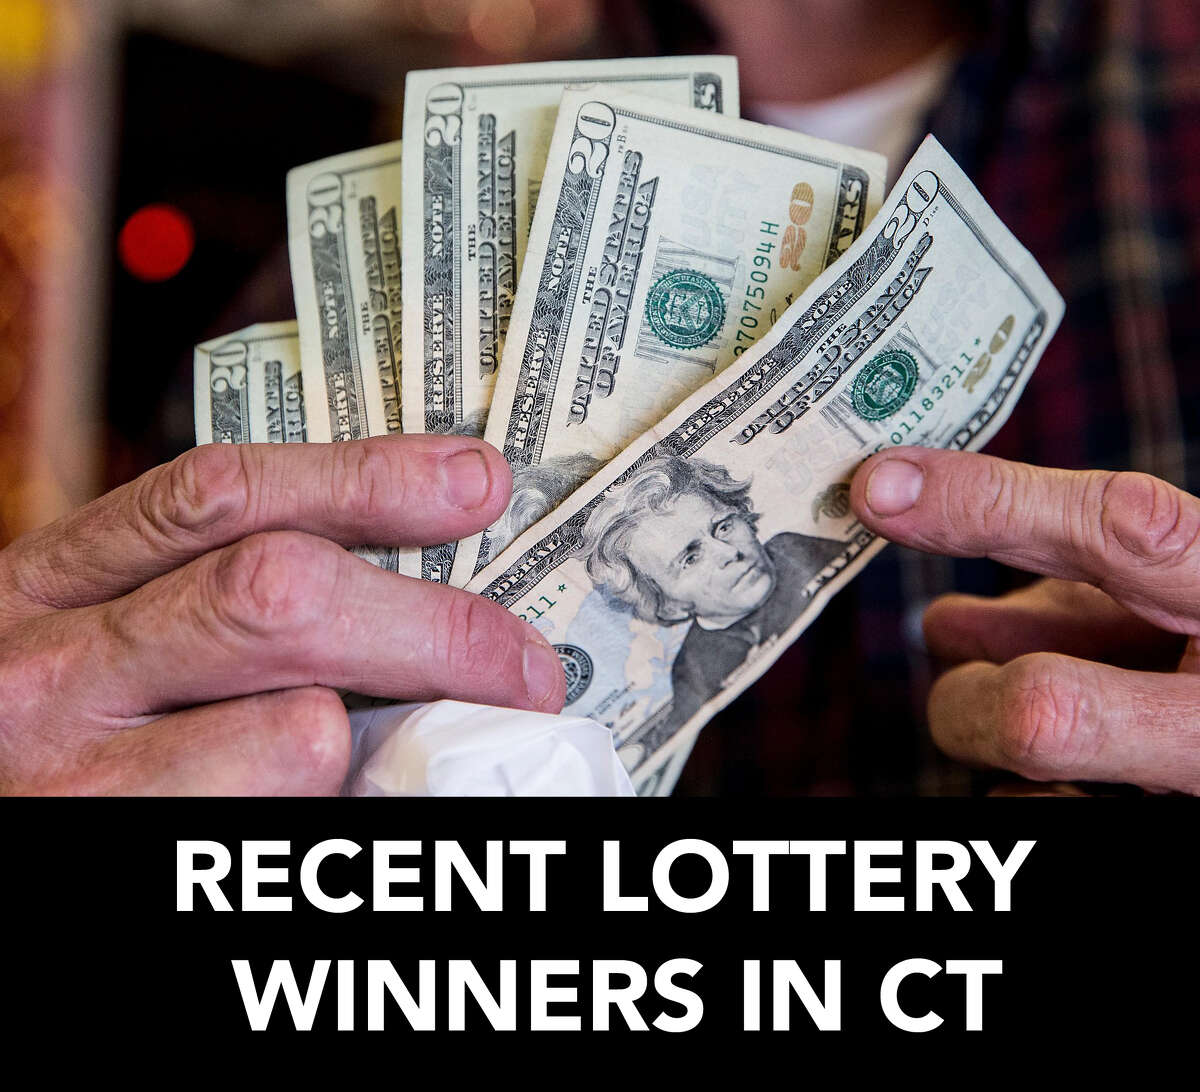 Keep clicking for a look at recent lottery winners in Connecticut.